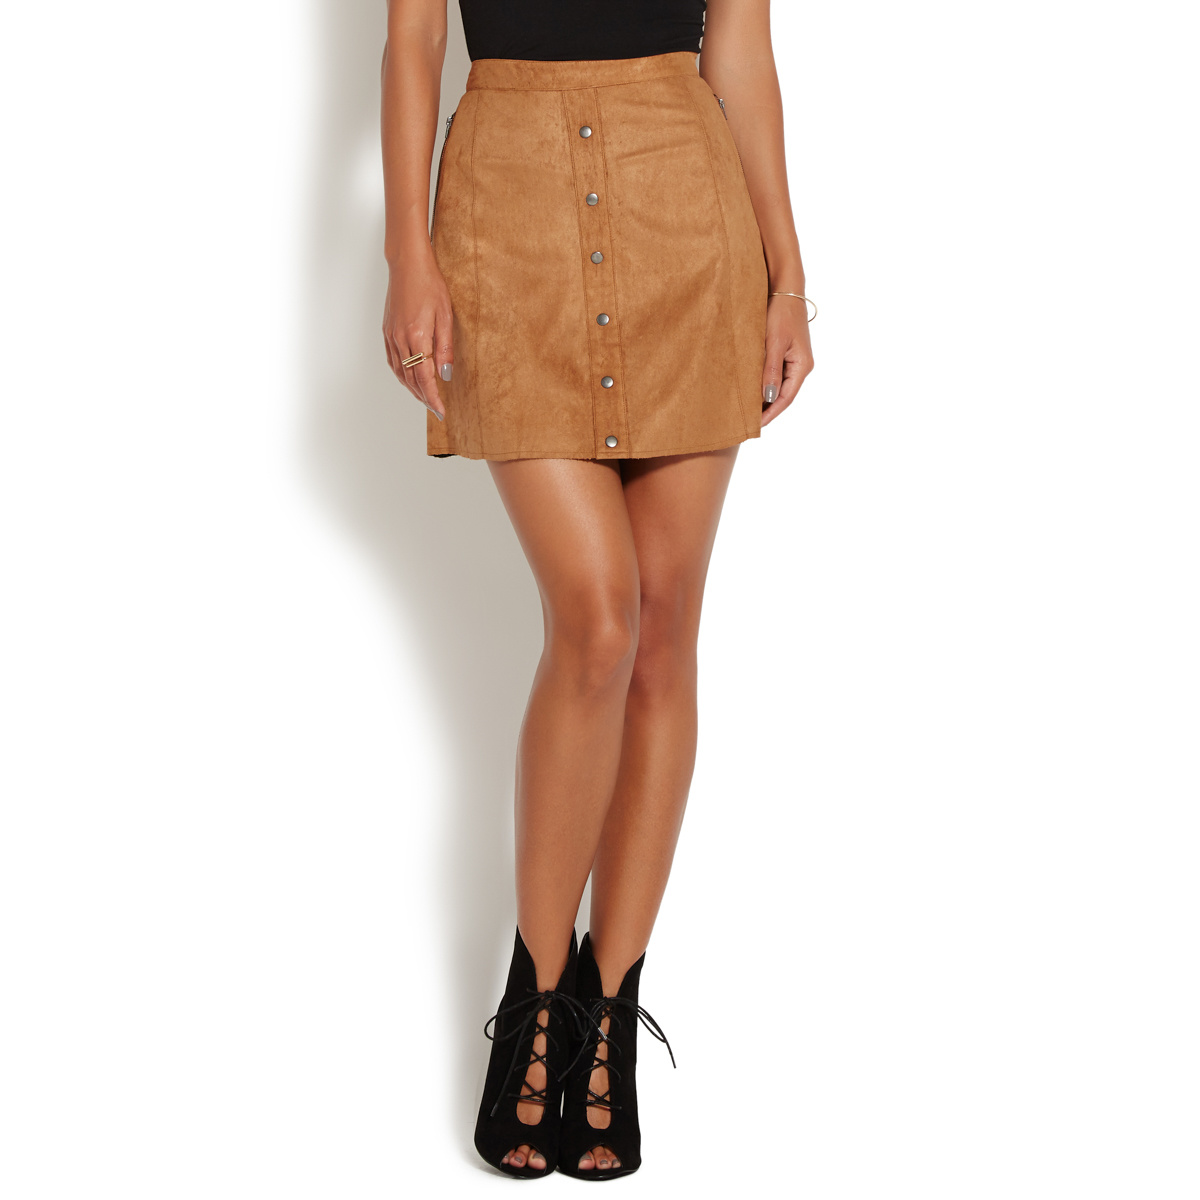 FAUX SUEDE SKIRT - ShoeDazzle